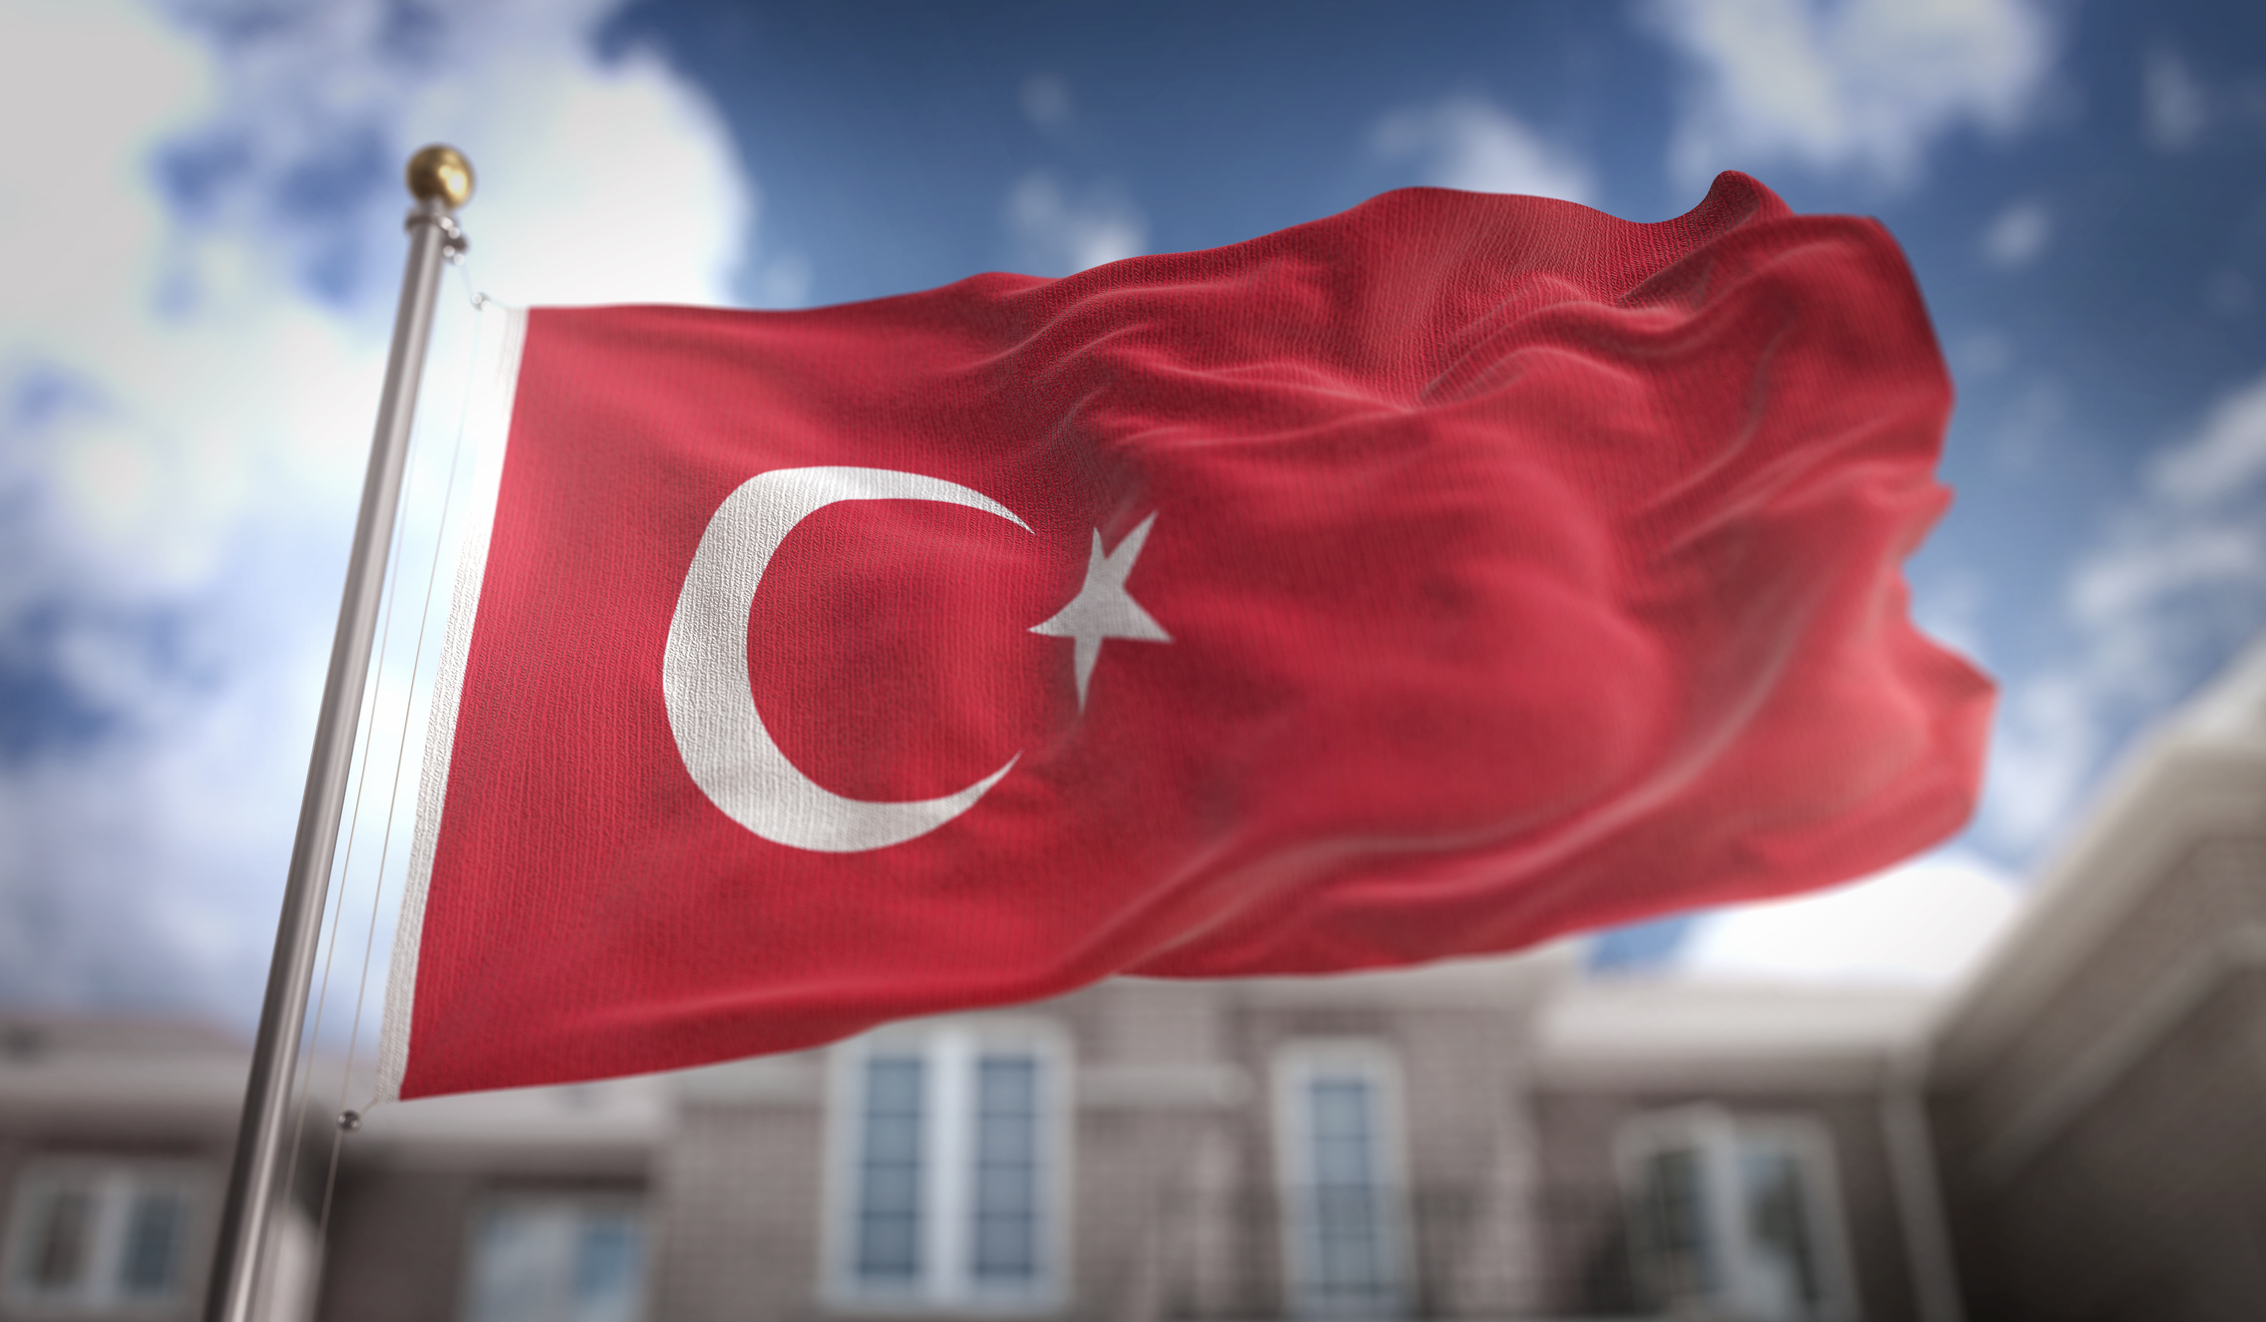 Turkish Crypto Exchanges Must Report Transactions Over $1,200, Minister Says